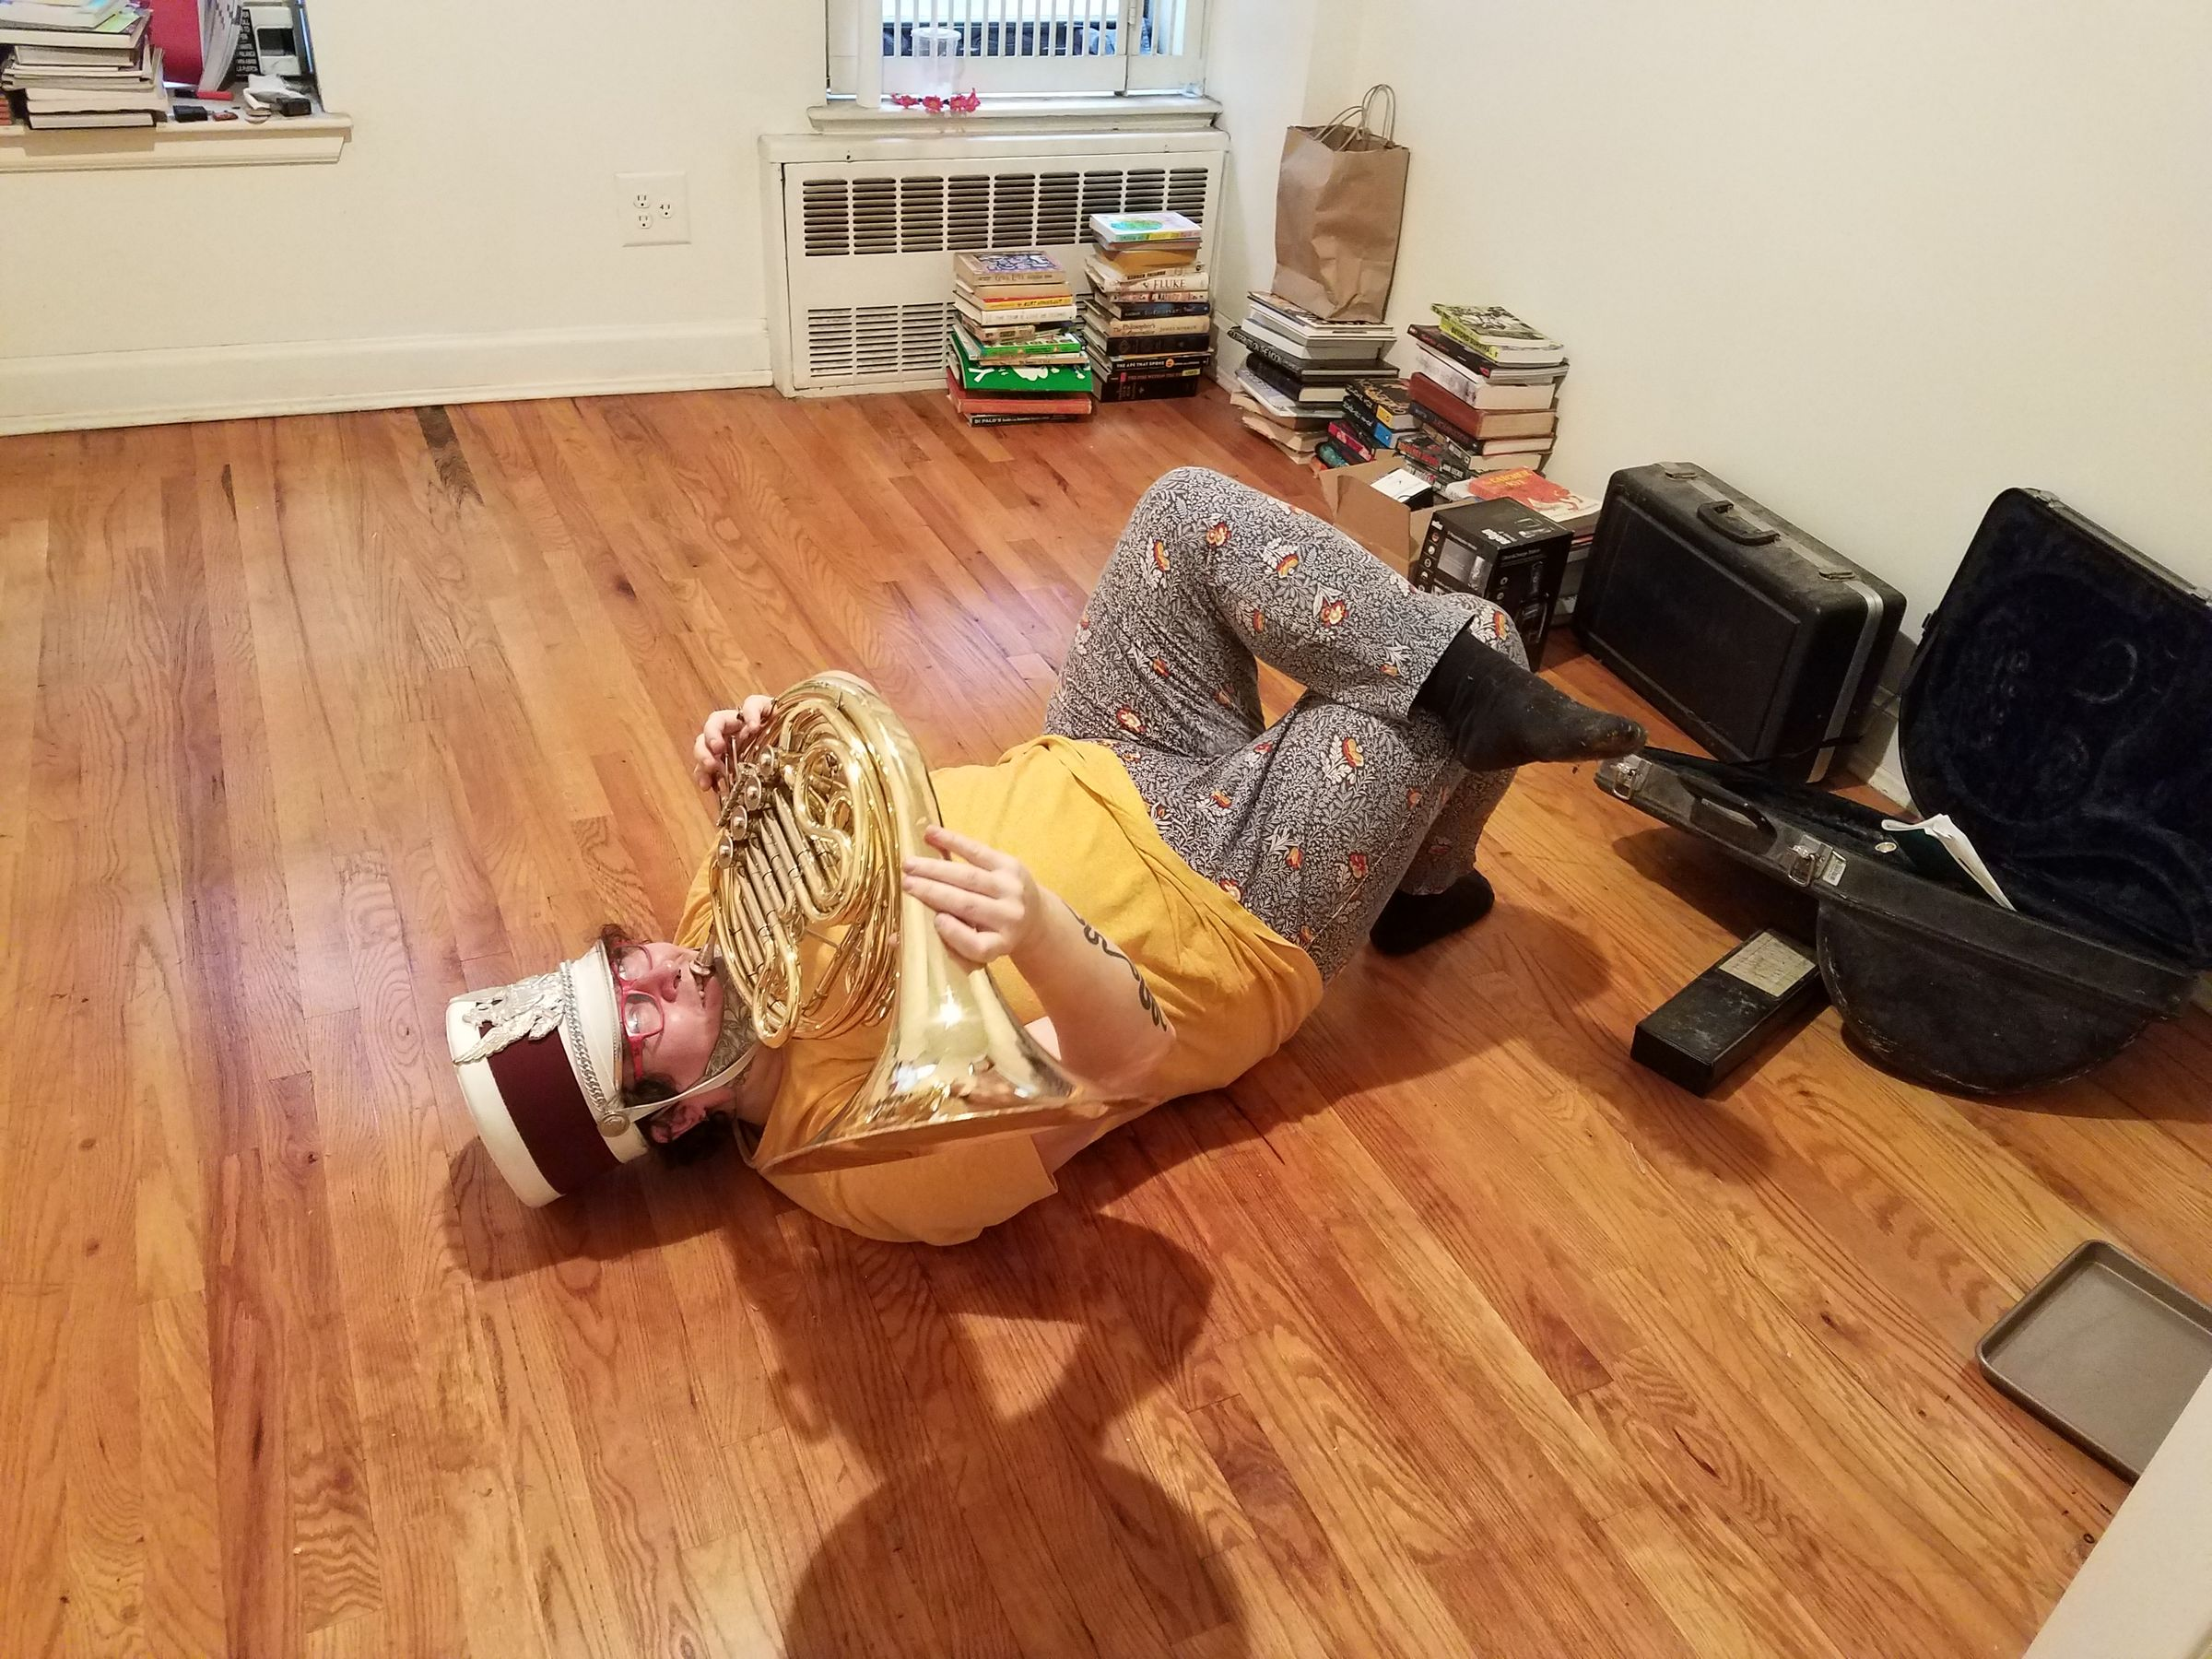 Photo of an empty apartment with stacks of books in the corner, and brass instrument cases against one wall. A person lies on the floor with their legs crossed, wearing a marching band hat, playing a French horn. They're also holding it wrong, with one hand trying to grab onto the outside of the bell.